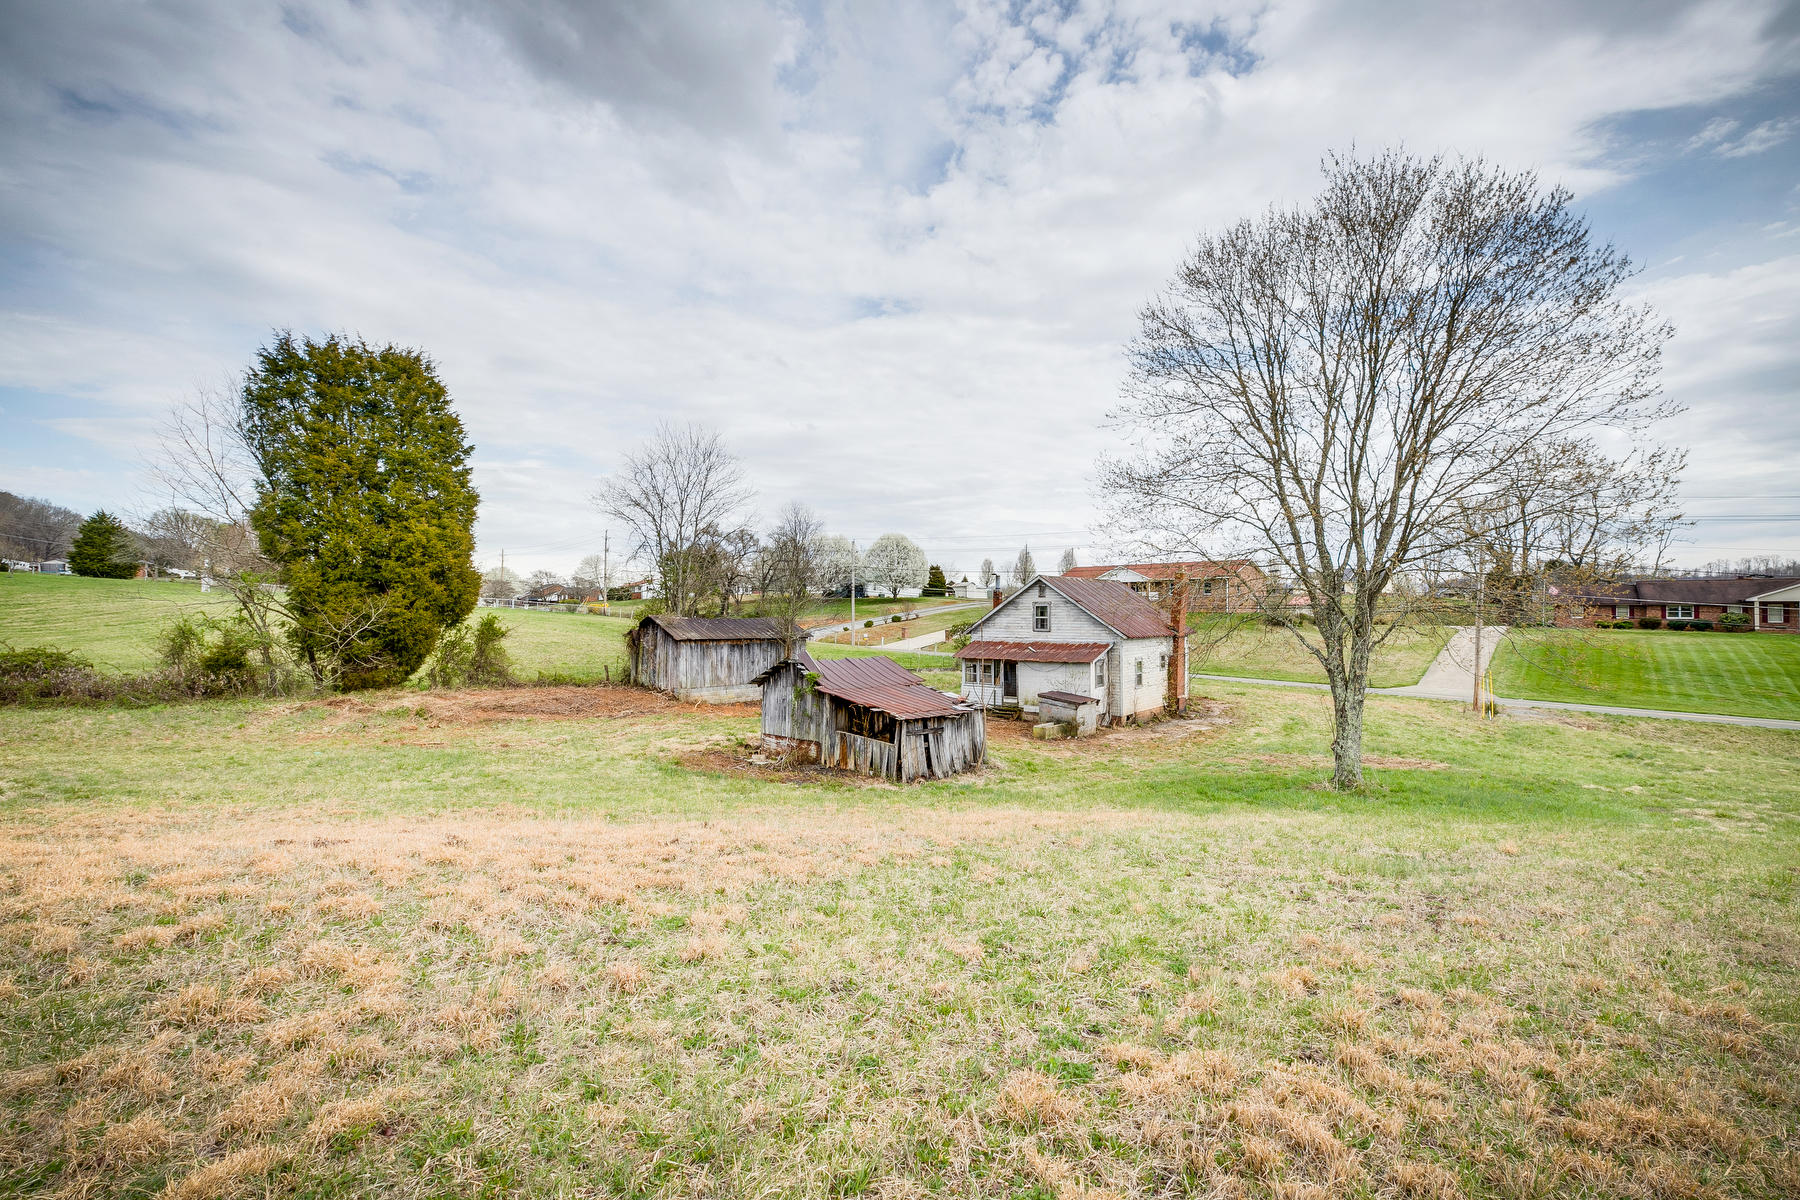 5485 Carters Valley Road, Church Hill, Tennessee 37642, 3 Bedrooms Bedrooms, ,1 BathroomBathrooms,Single Family,For Sale,5485 Carters Valley Road,2,9920856